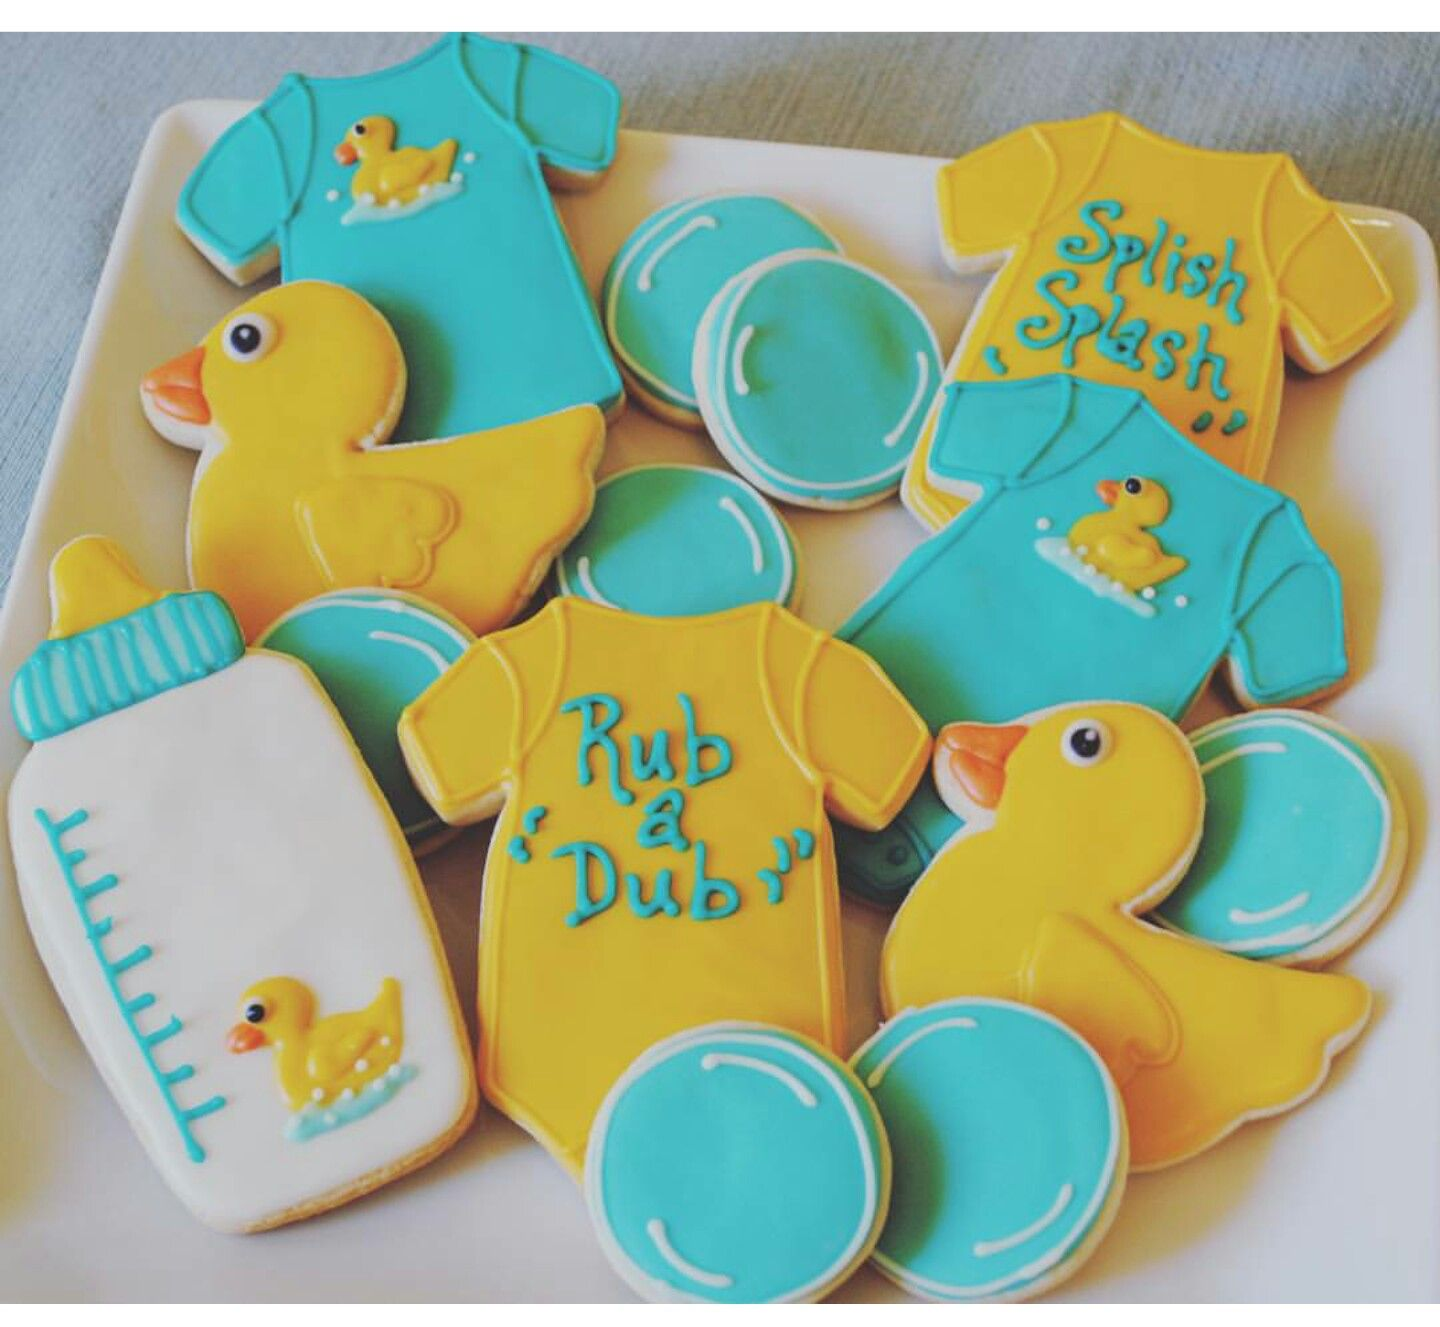 Rubber ducky baby shower cookies